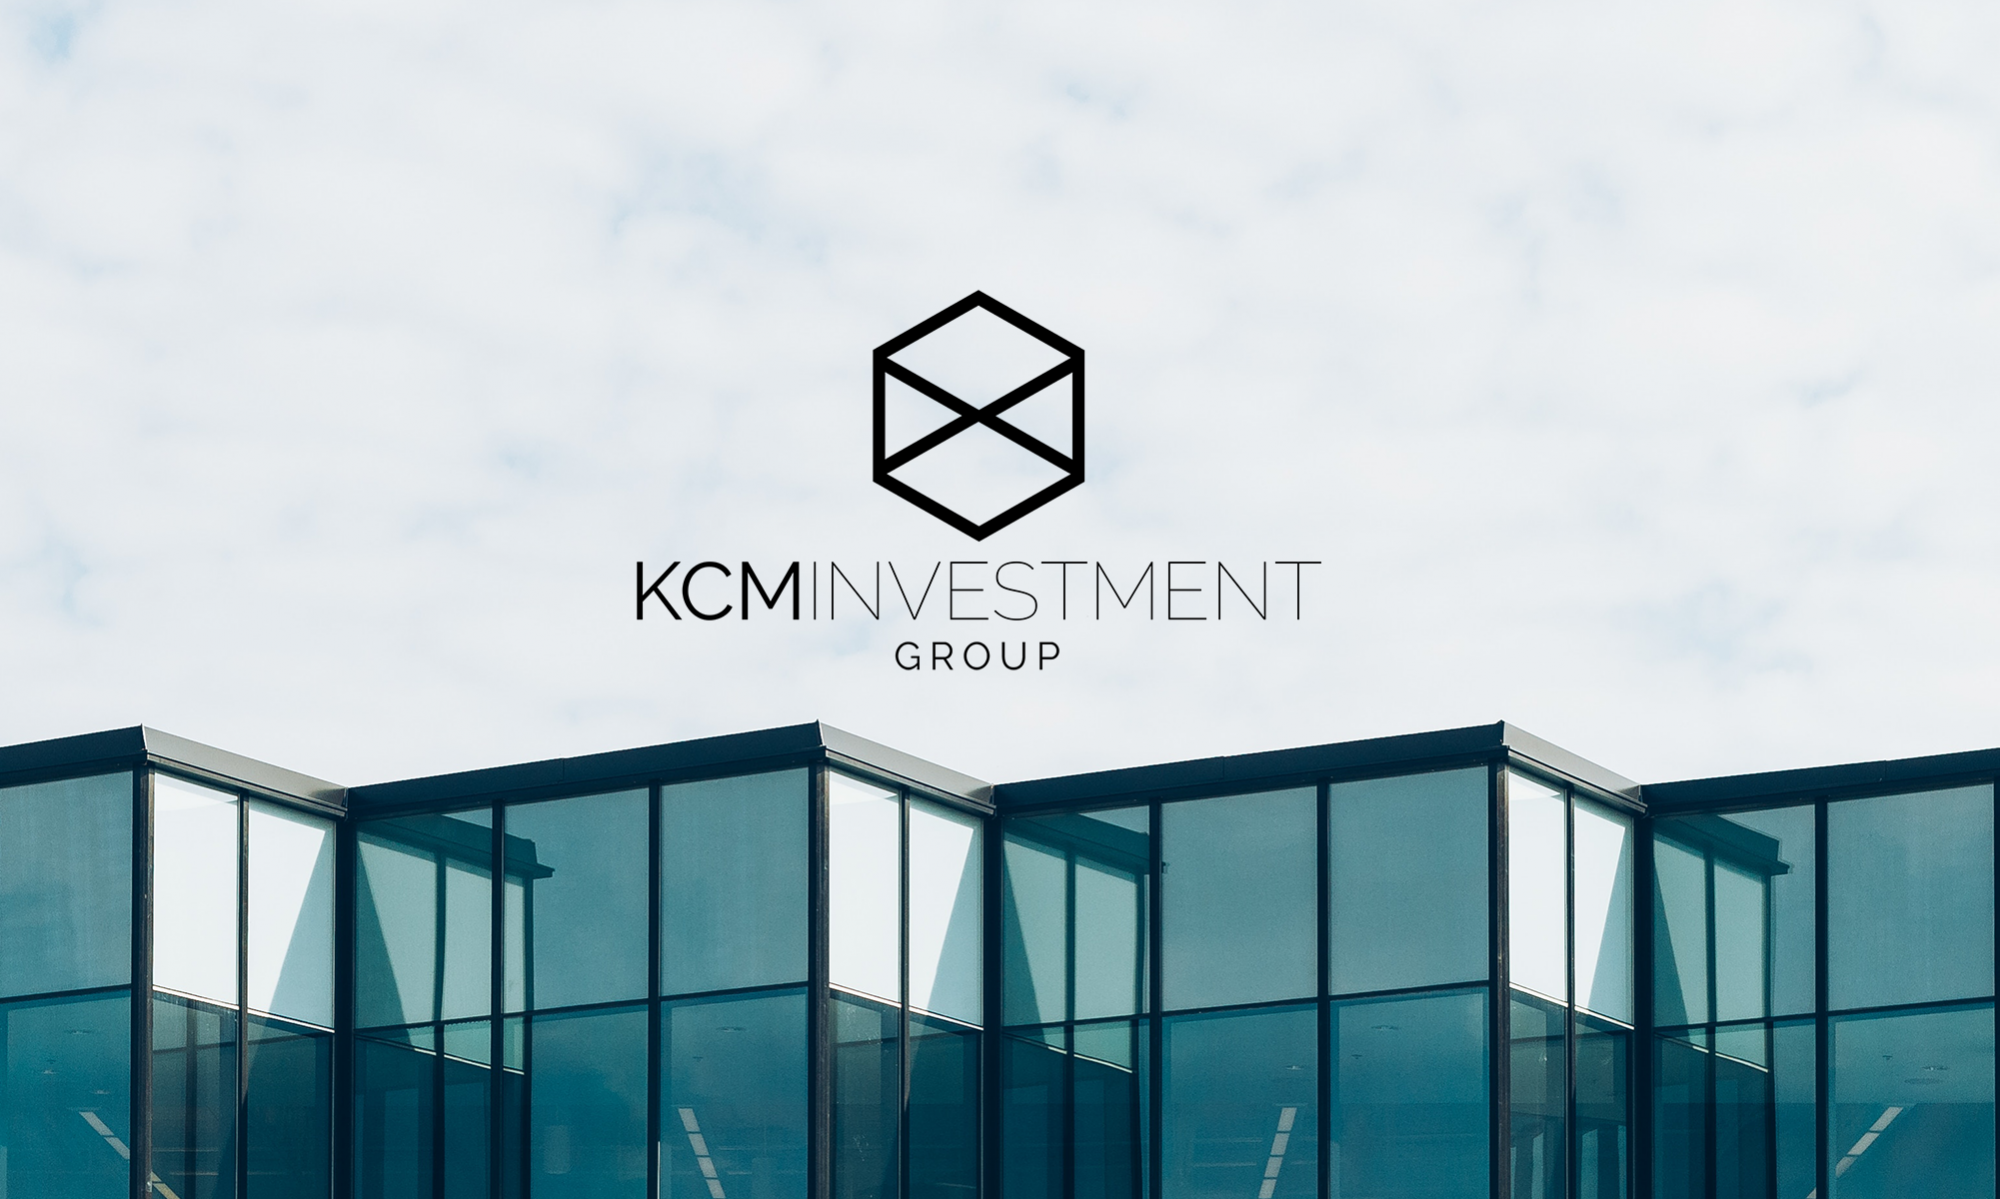 KCM Investment Group